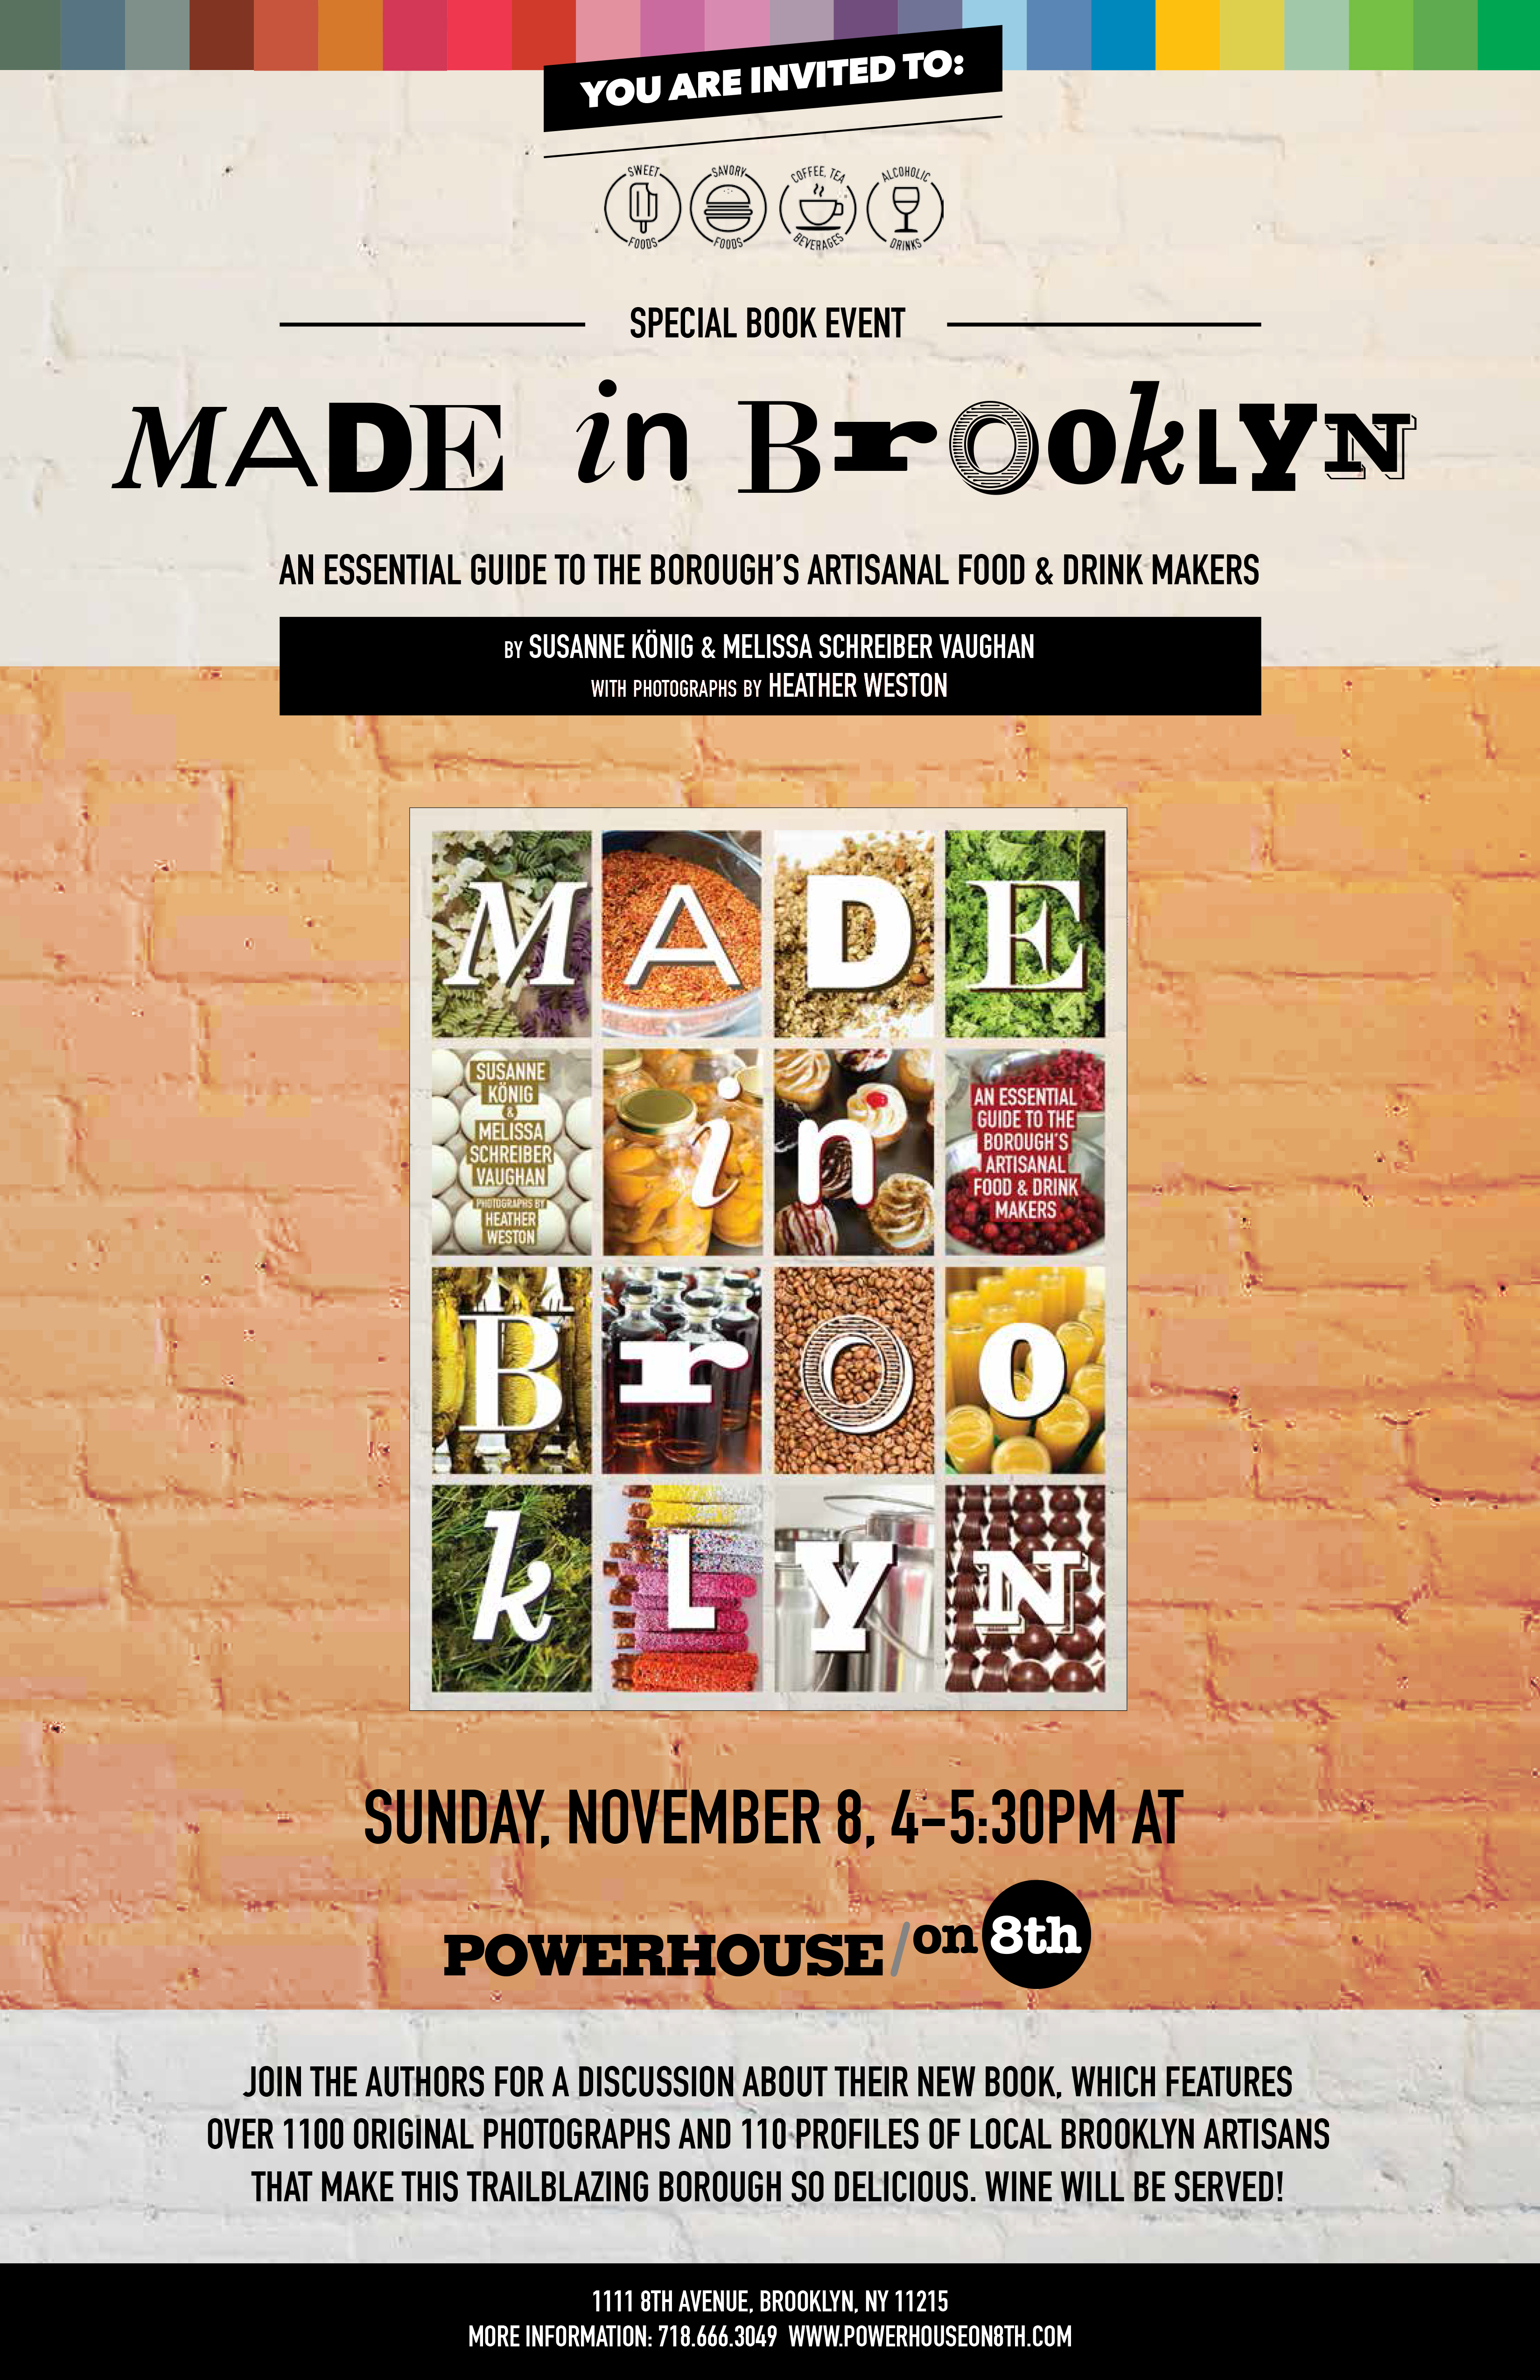 Made in Brooklyn: An Essential Guide to the Borough's Artisanal Food & Drink Makers by Susanne König and Melissa Schreiber Vaughan